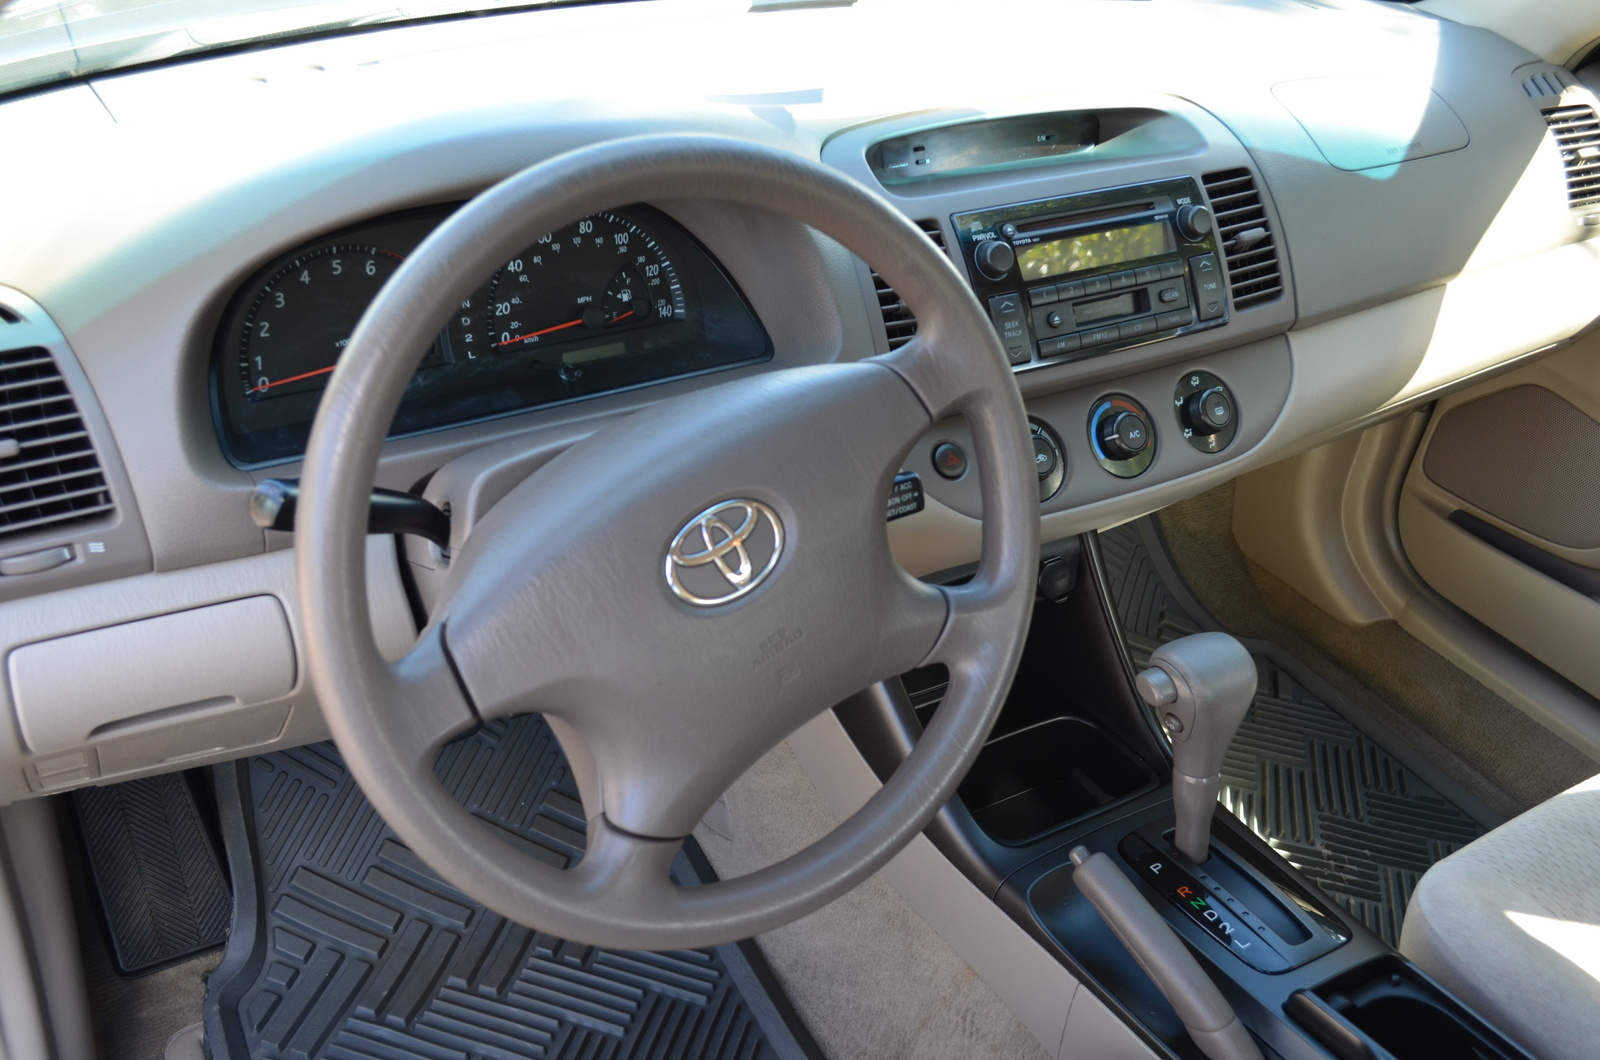 2003 toyota camry interior pictures cargurus. Black Bedroom Furniture Sets. Home Design Ideas